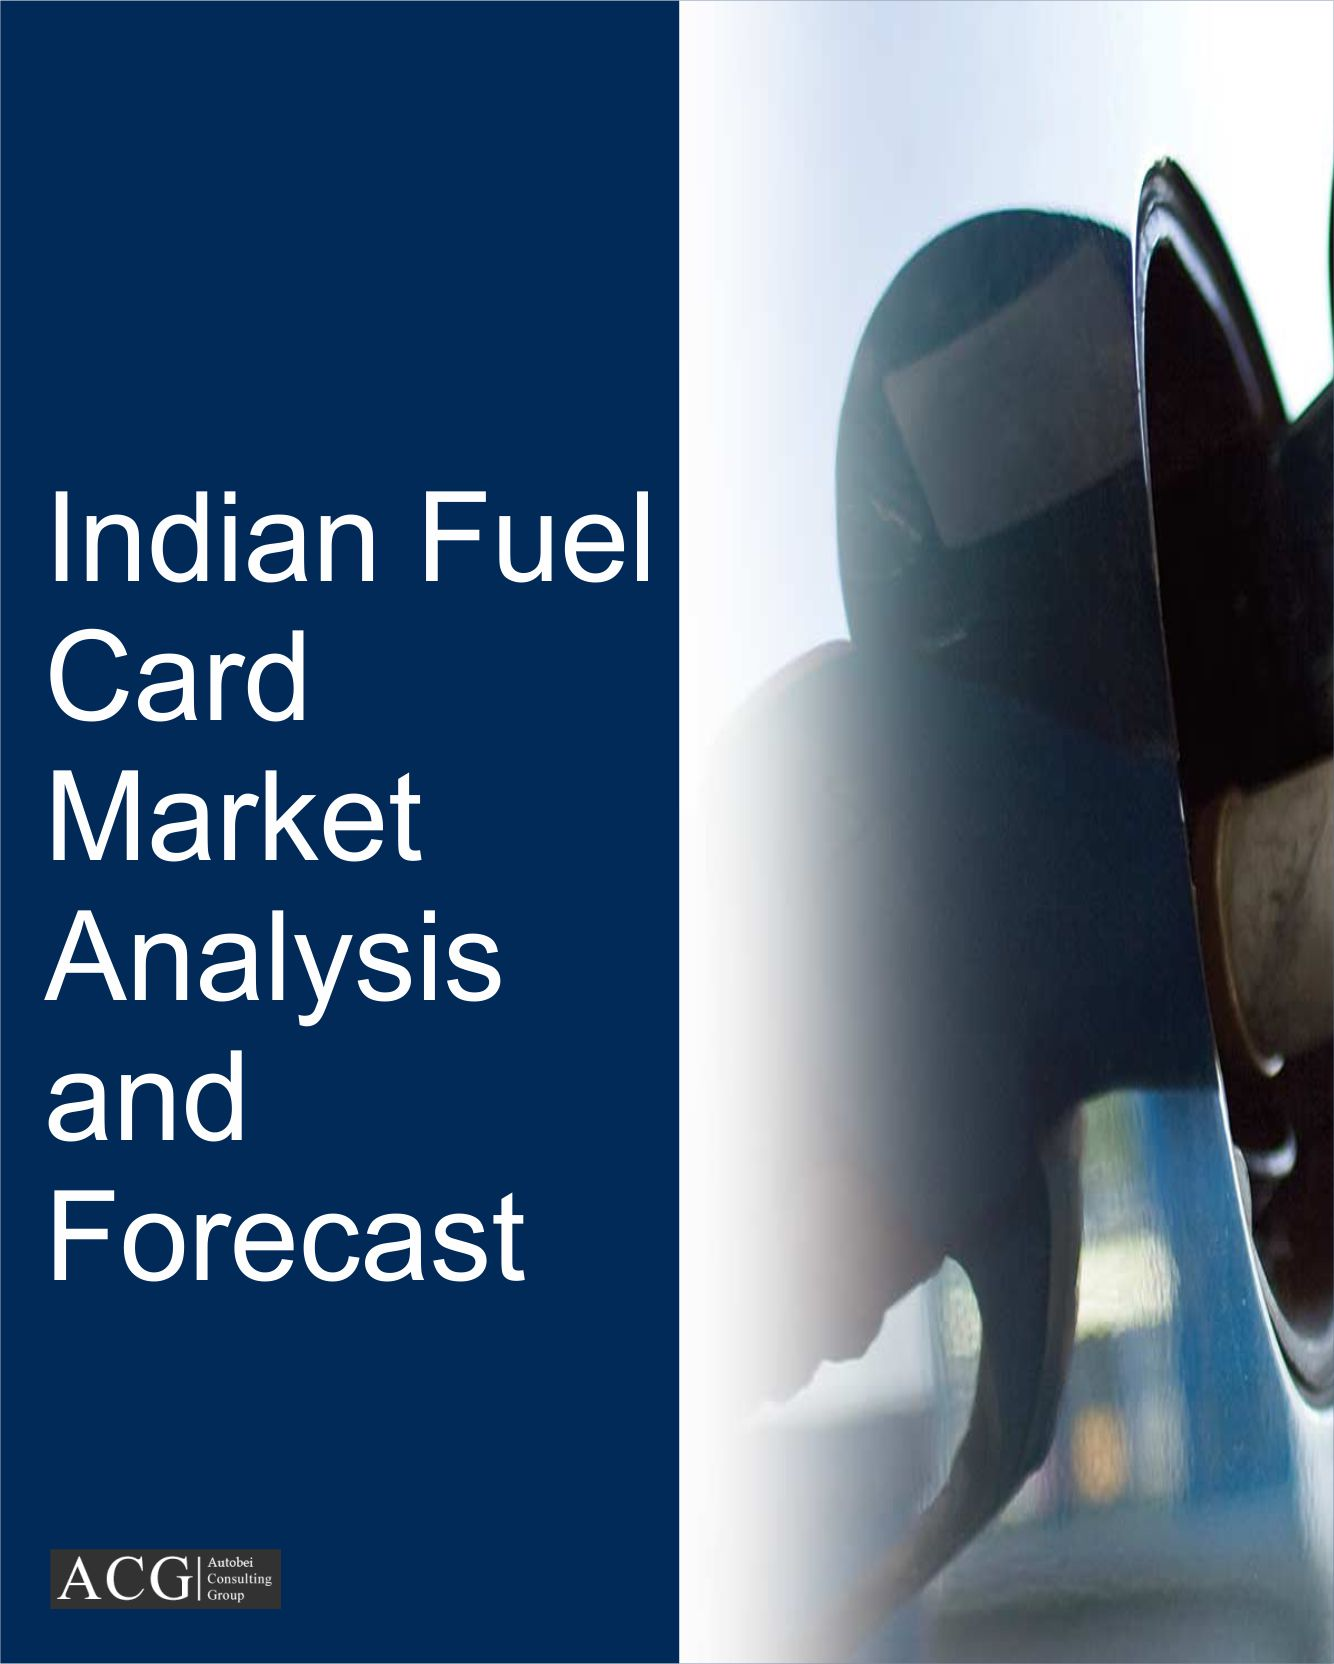 Indian Fuel Card Market Analysis and Forecast 2023